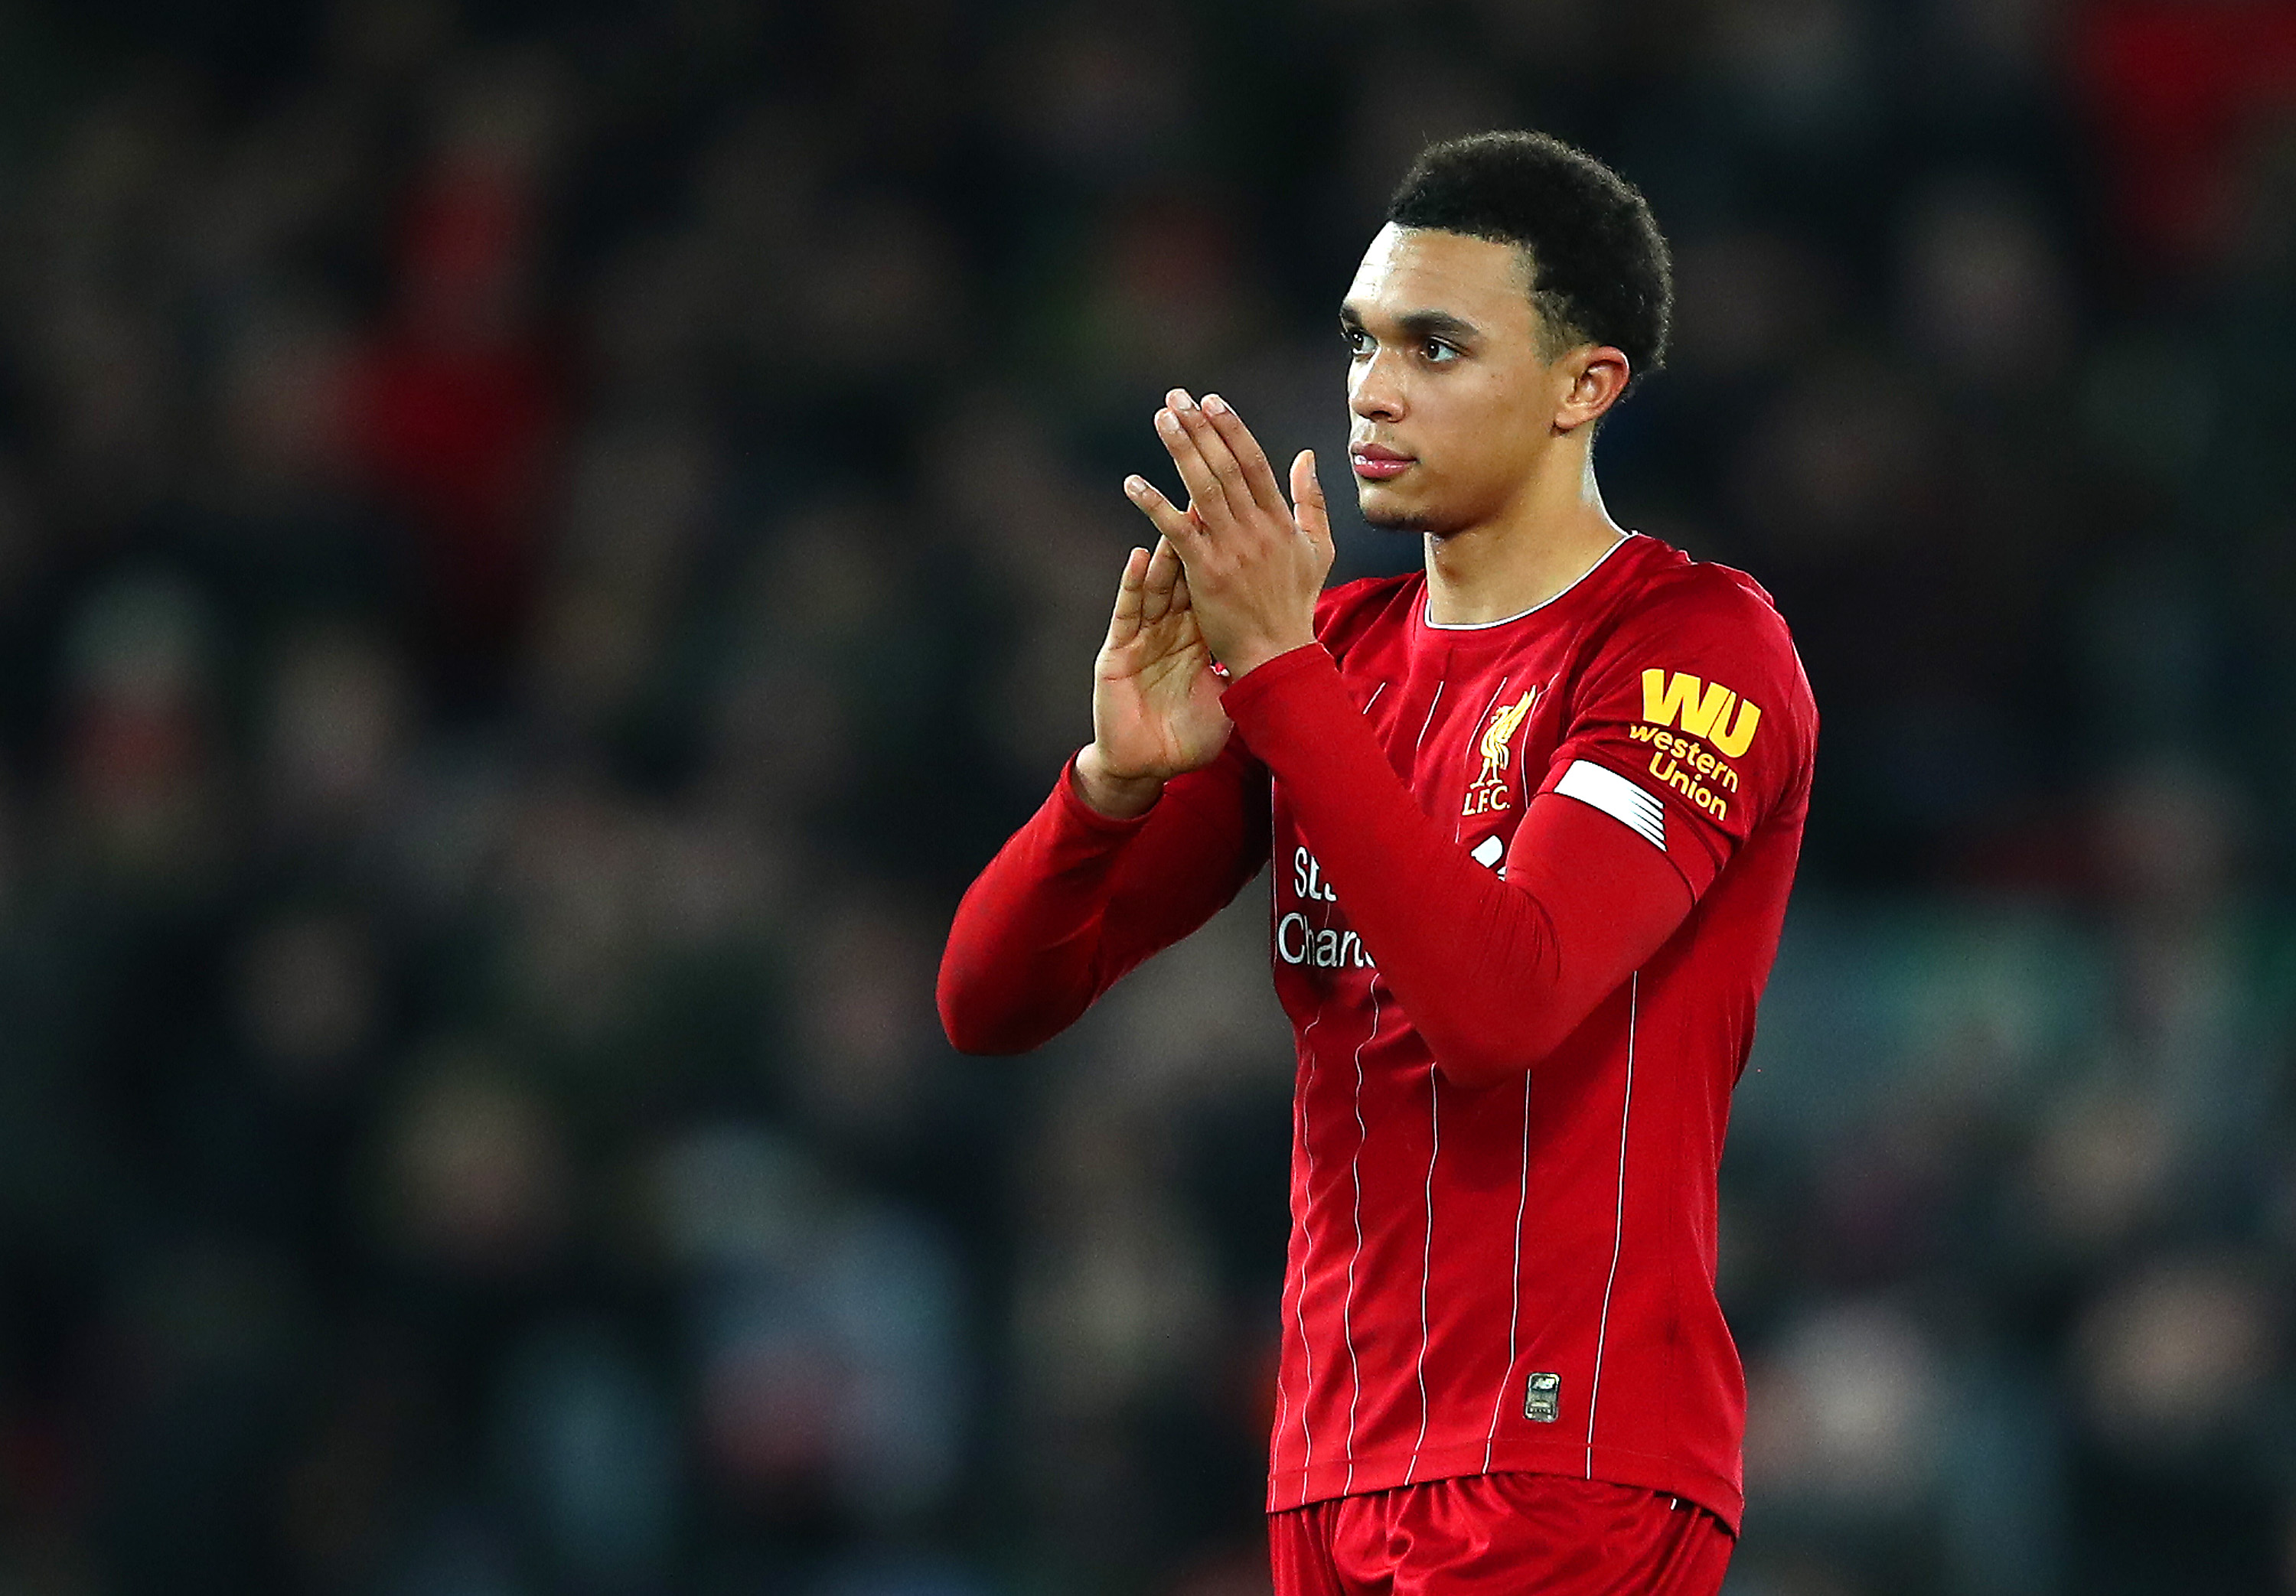 Alexander-Arnold recently signed a new contract with Liverpool (Photo by Clive Brunskill/Getty Images)